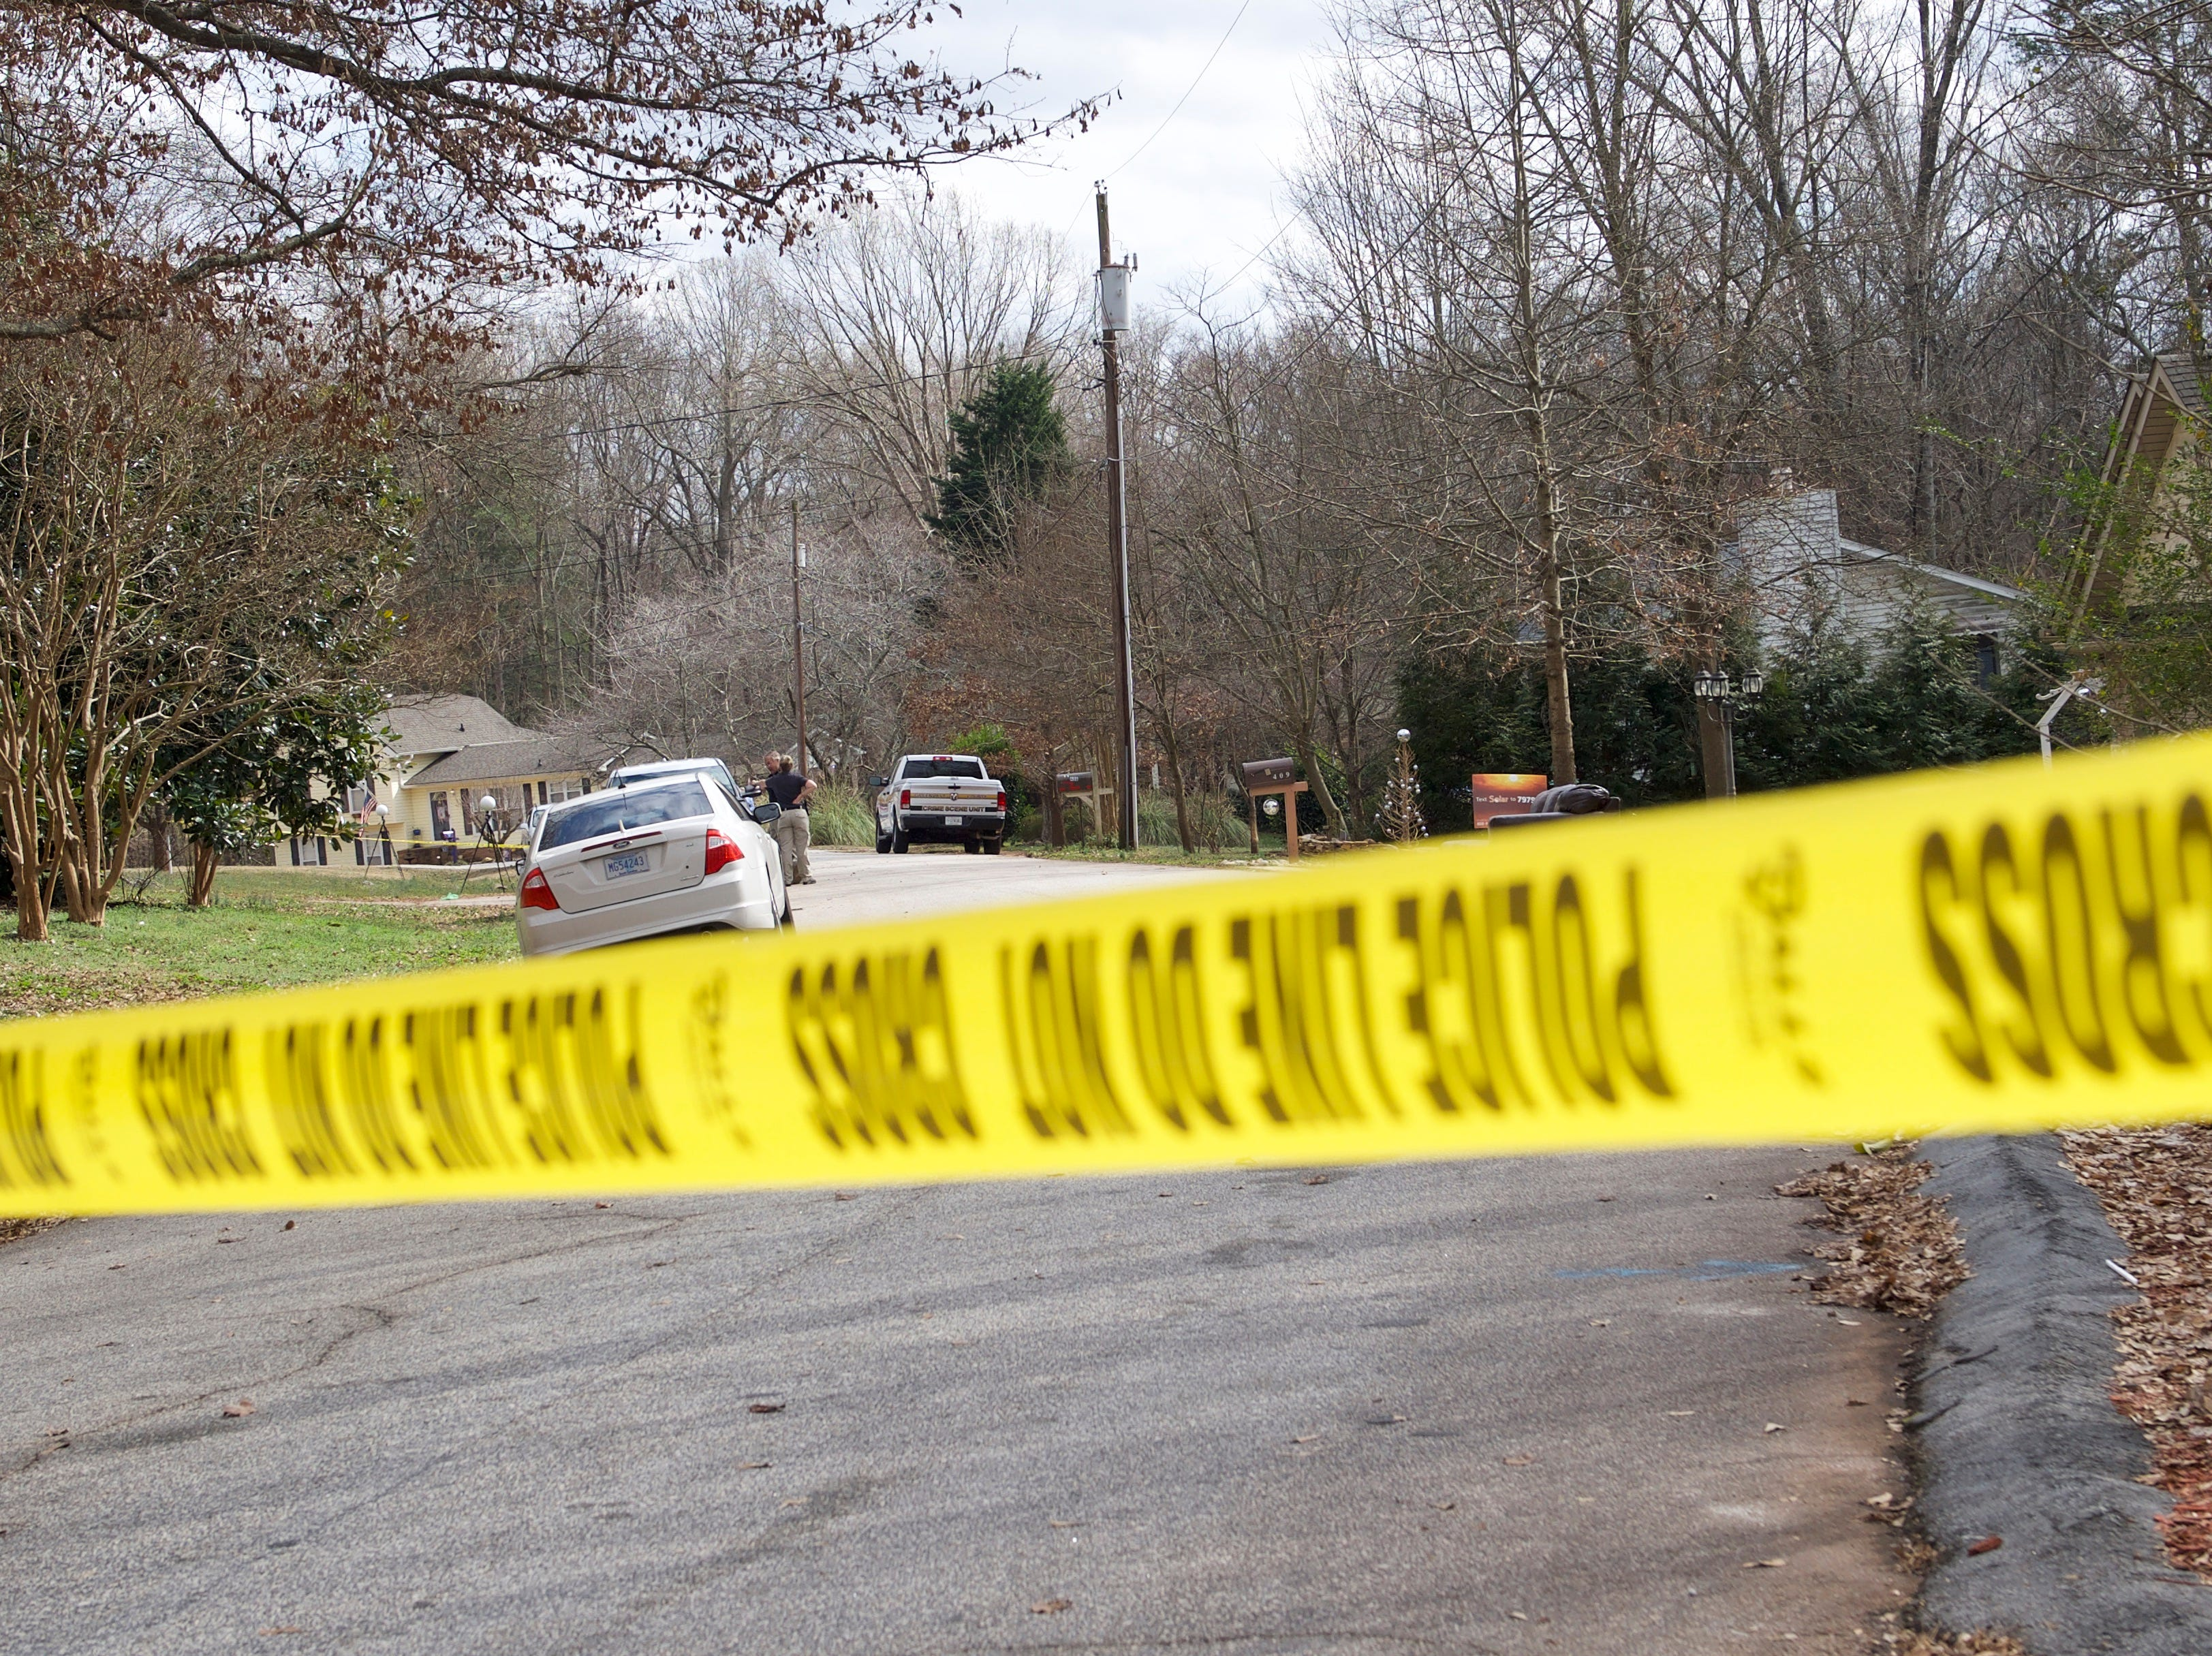 One person is dead, according to Greer Police, after a shooting on Bent Creek Drive in the Bent Creek subdivision on Thursday, Feb. 7, 2019.